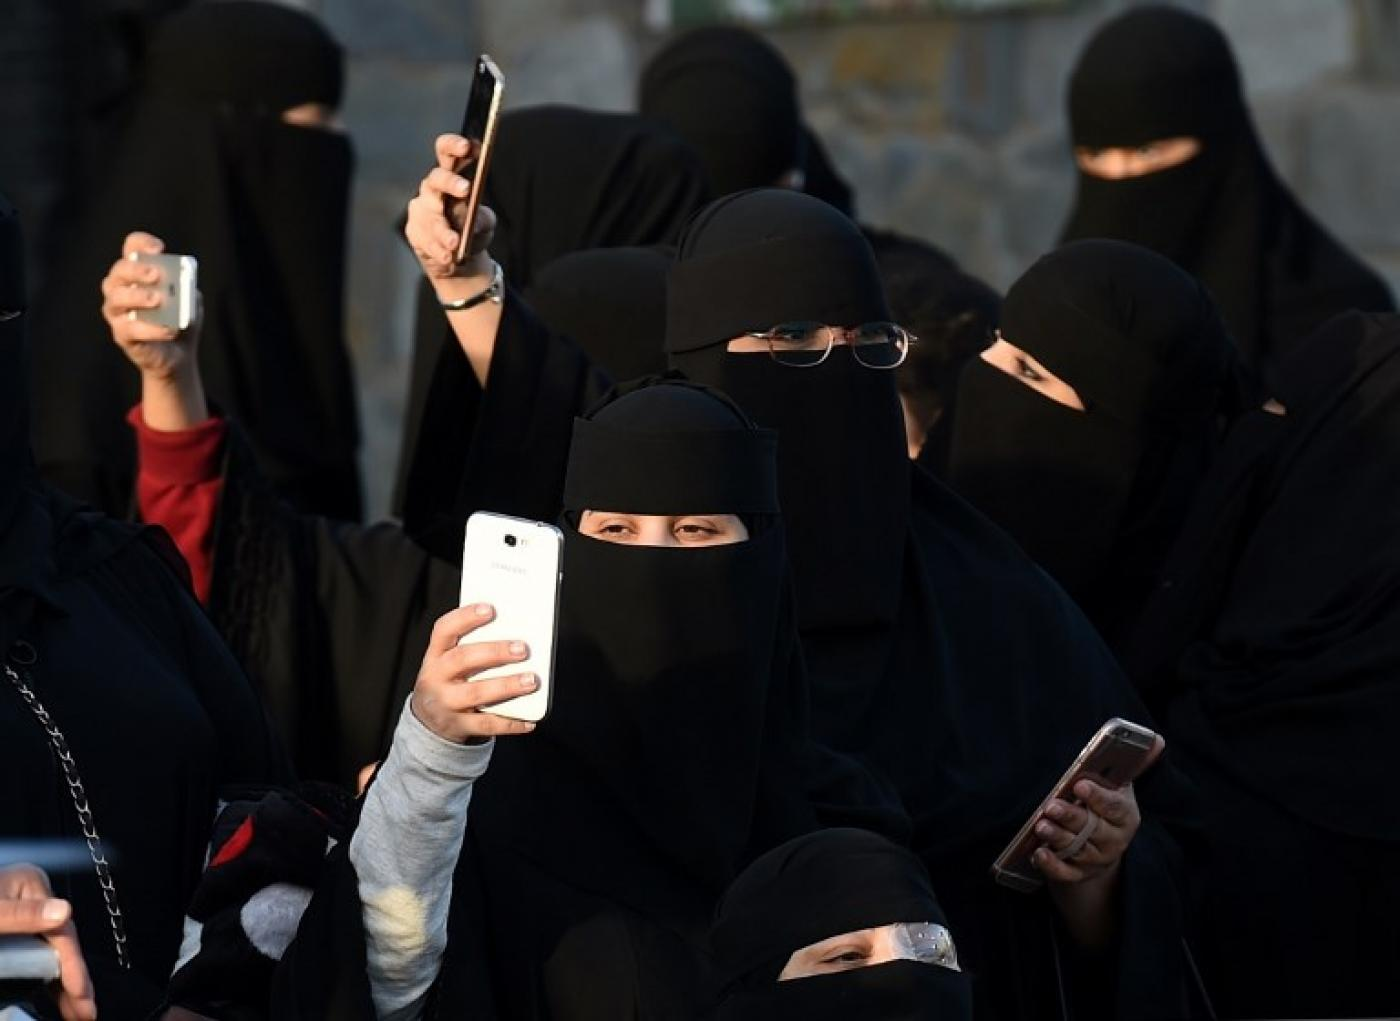 Tracking women: Saudi defends app allowing men to monitor women relatives